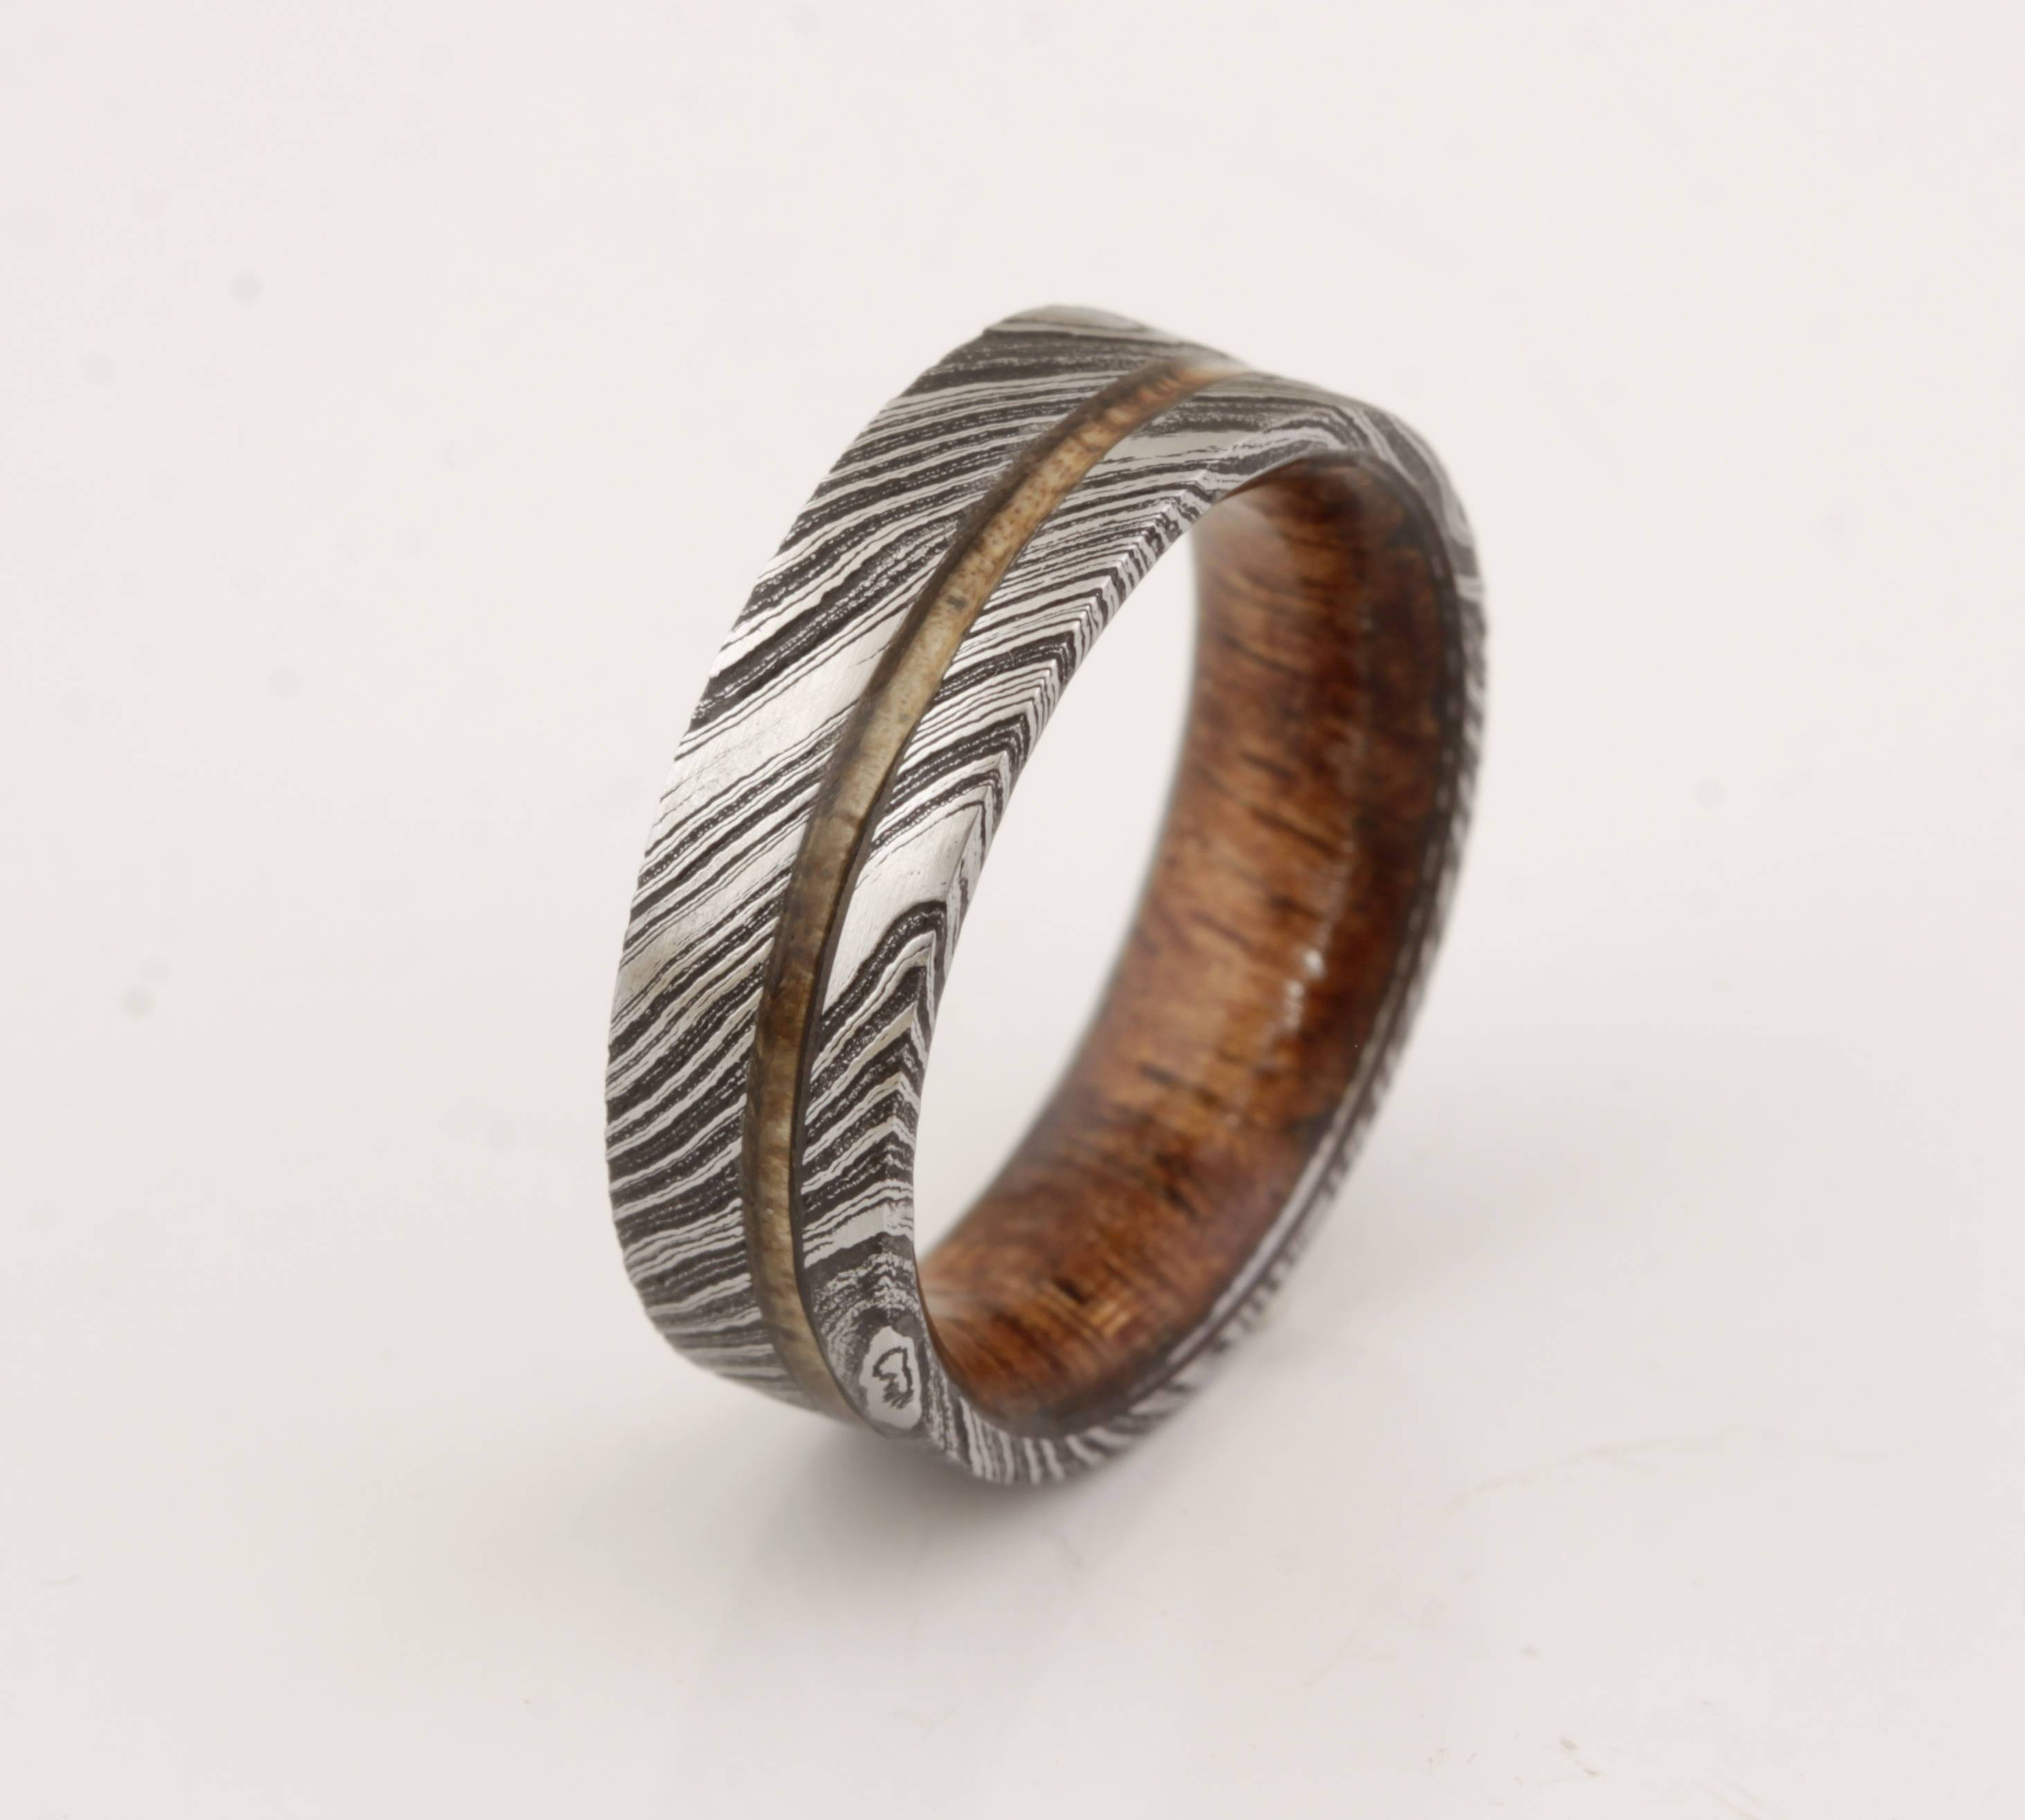 Wood Ring Damascus Steel Ring Wood Wedding Band Man Ring With Regard To Damascus Steel Men's Wedding Bands (View 15 of 15)